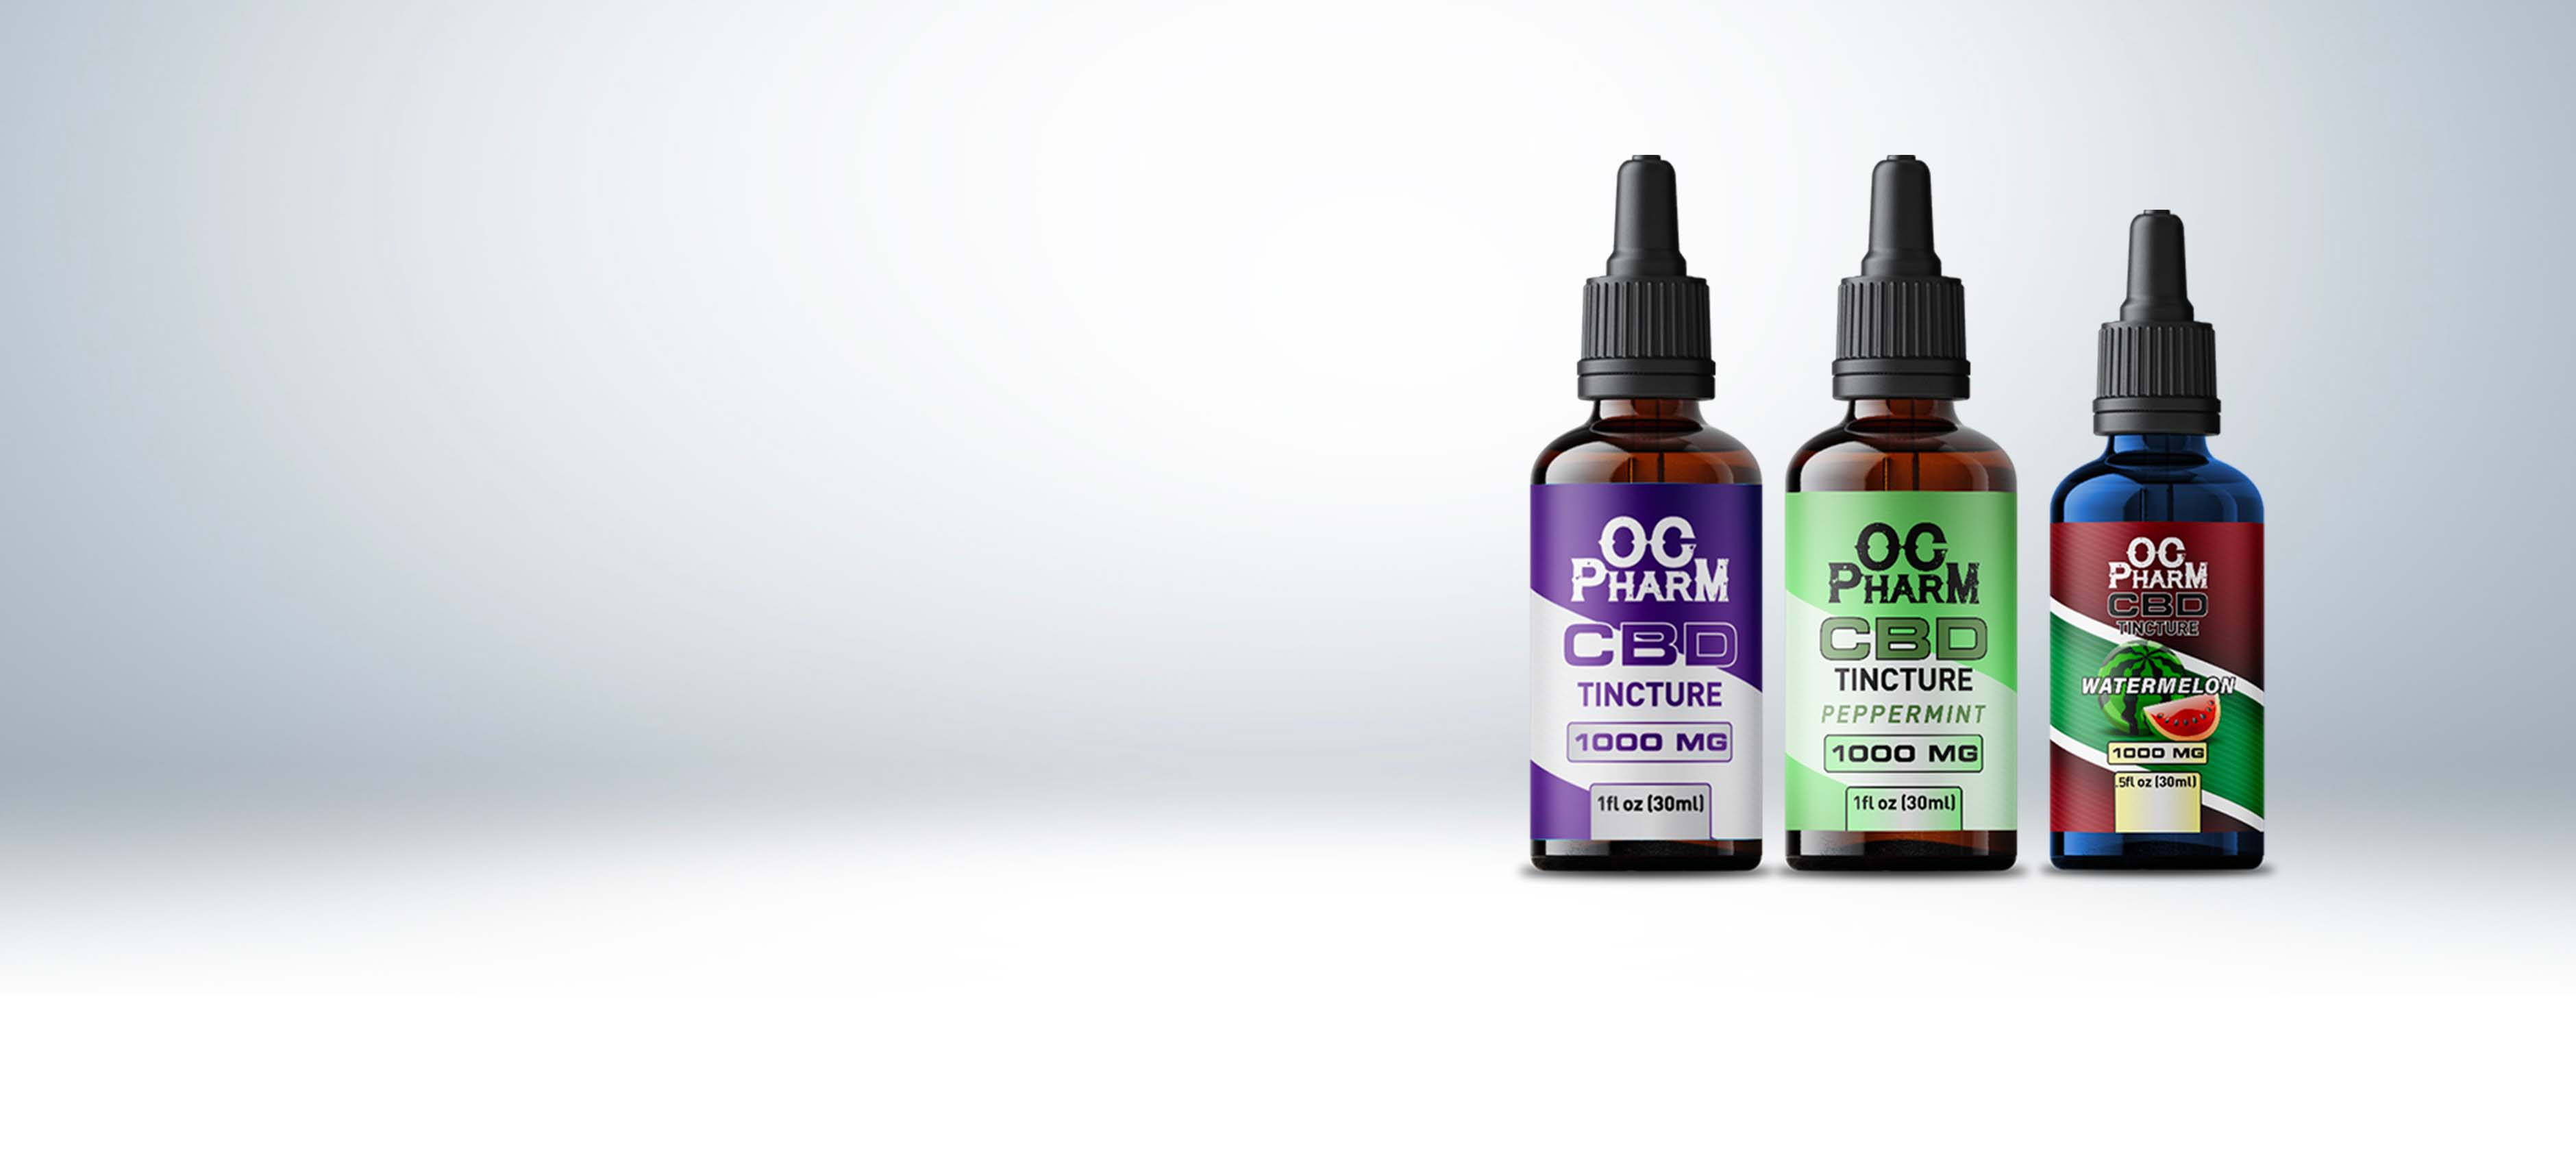 GET A .5oz WATERMELON TINCTURE FOR FREE